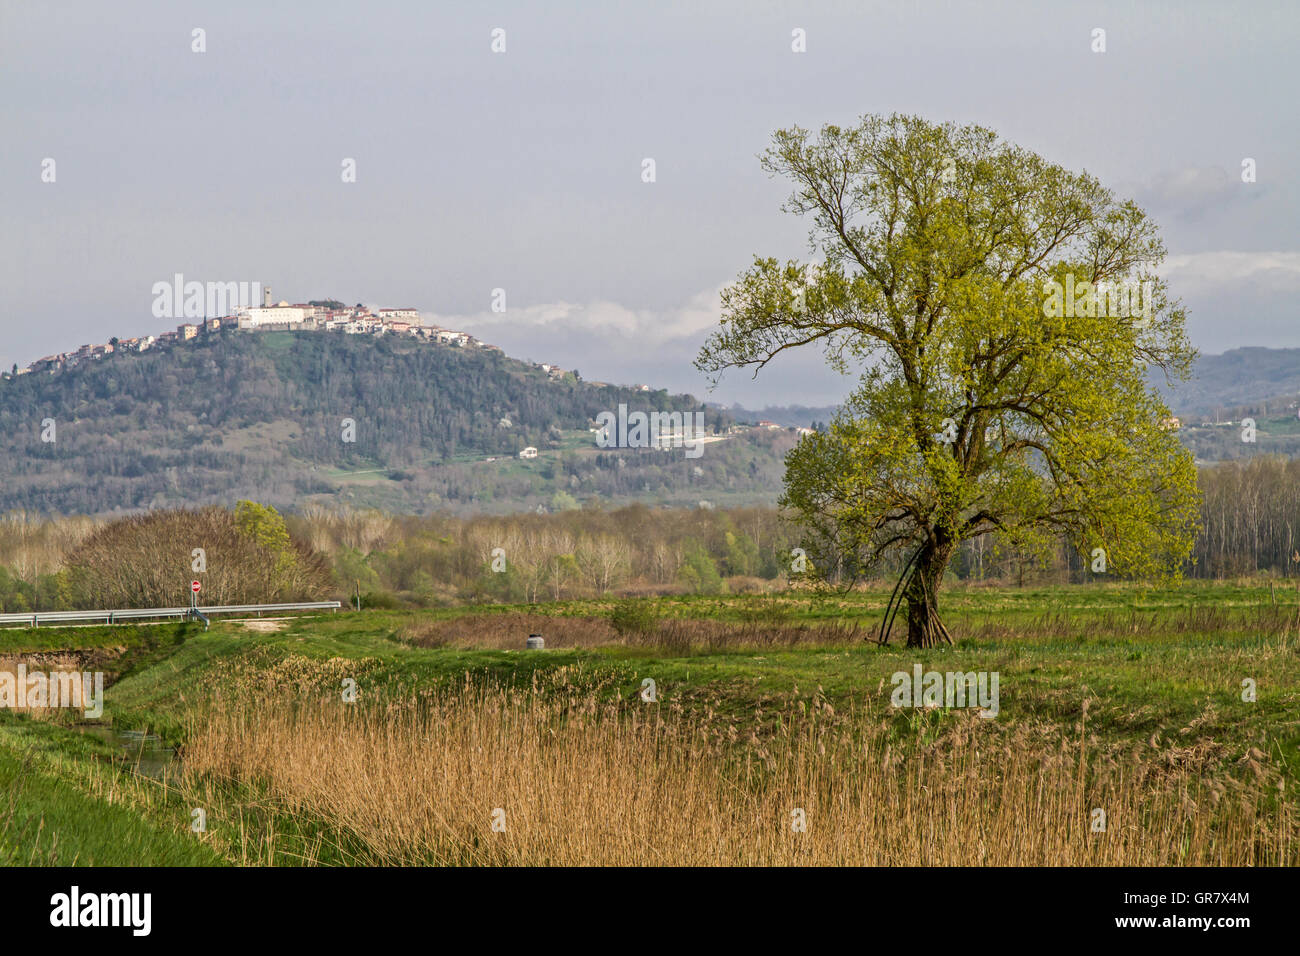 The Small Medieval Town Of Motovun Is Perched On A 280 M High Hilltop In Mirnatal Stock Photo